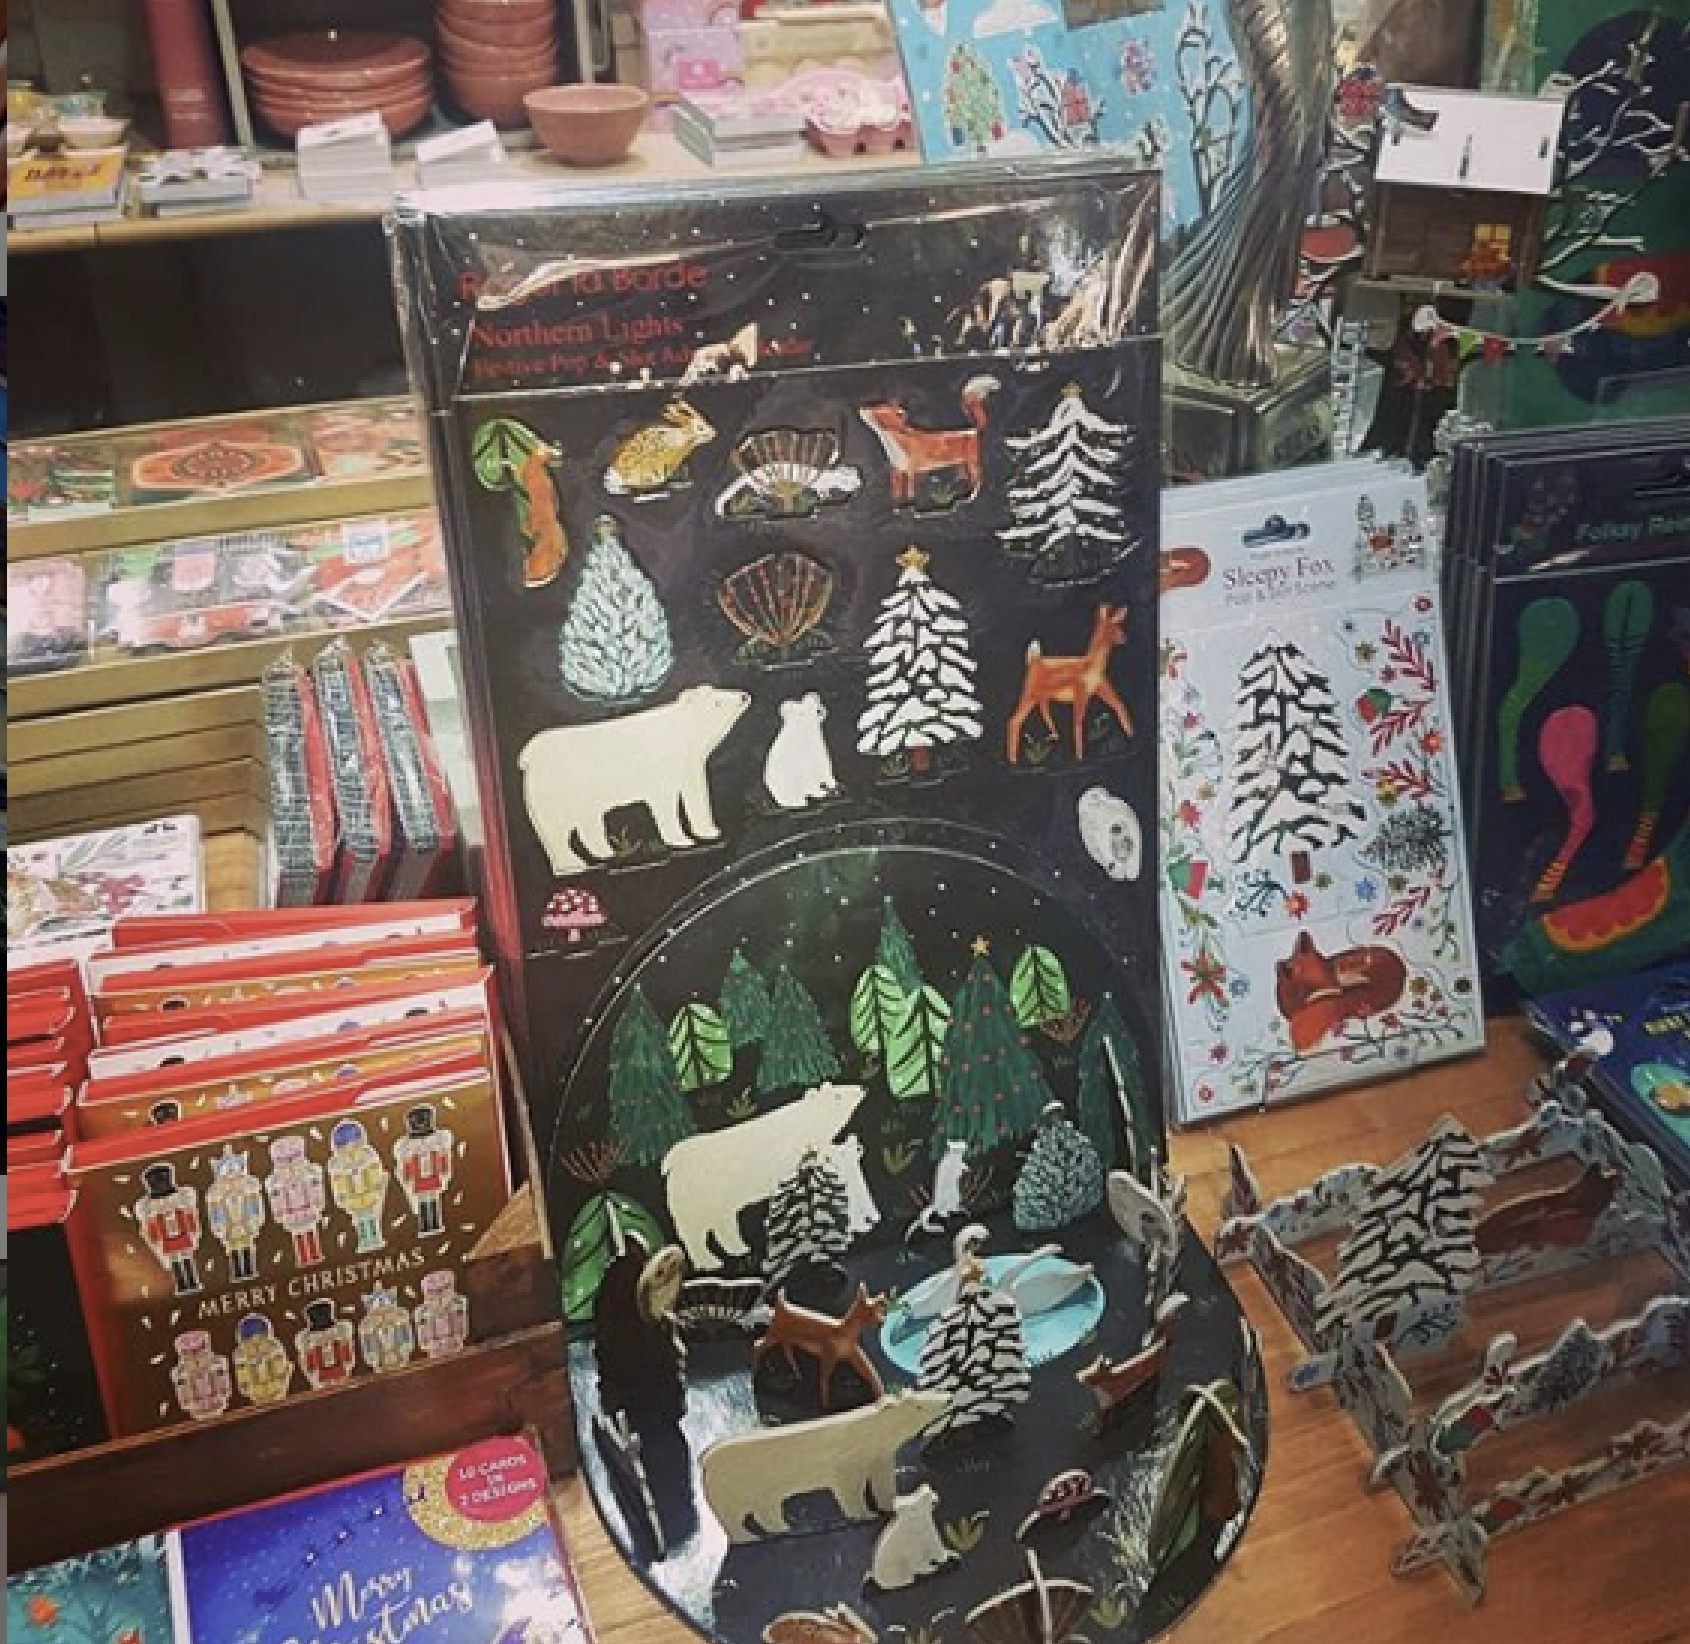 Above: A selection of Christmas products that Calladoodles has on offer.